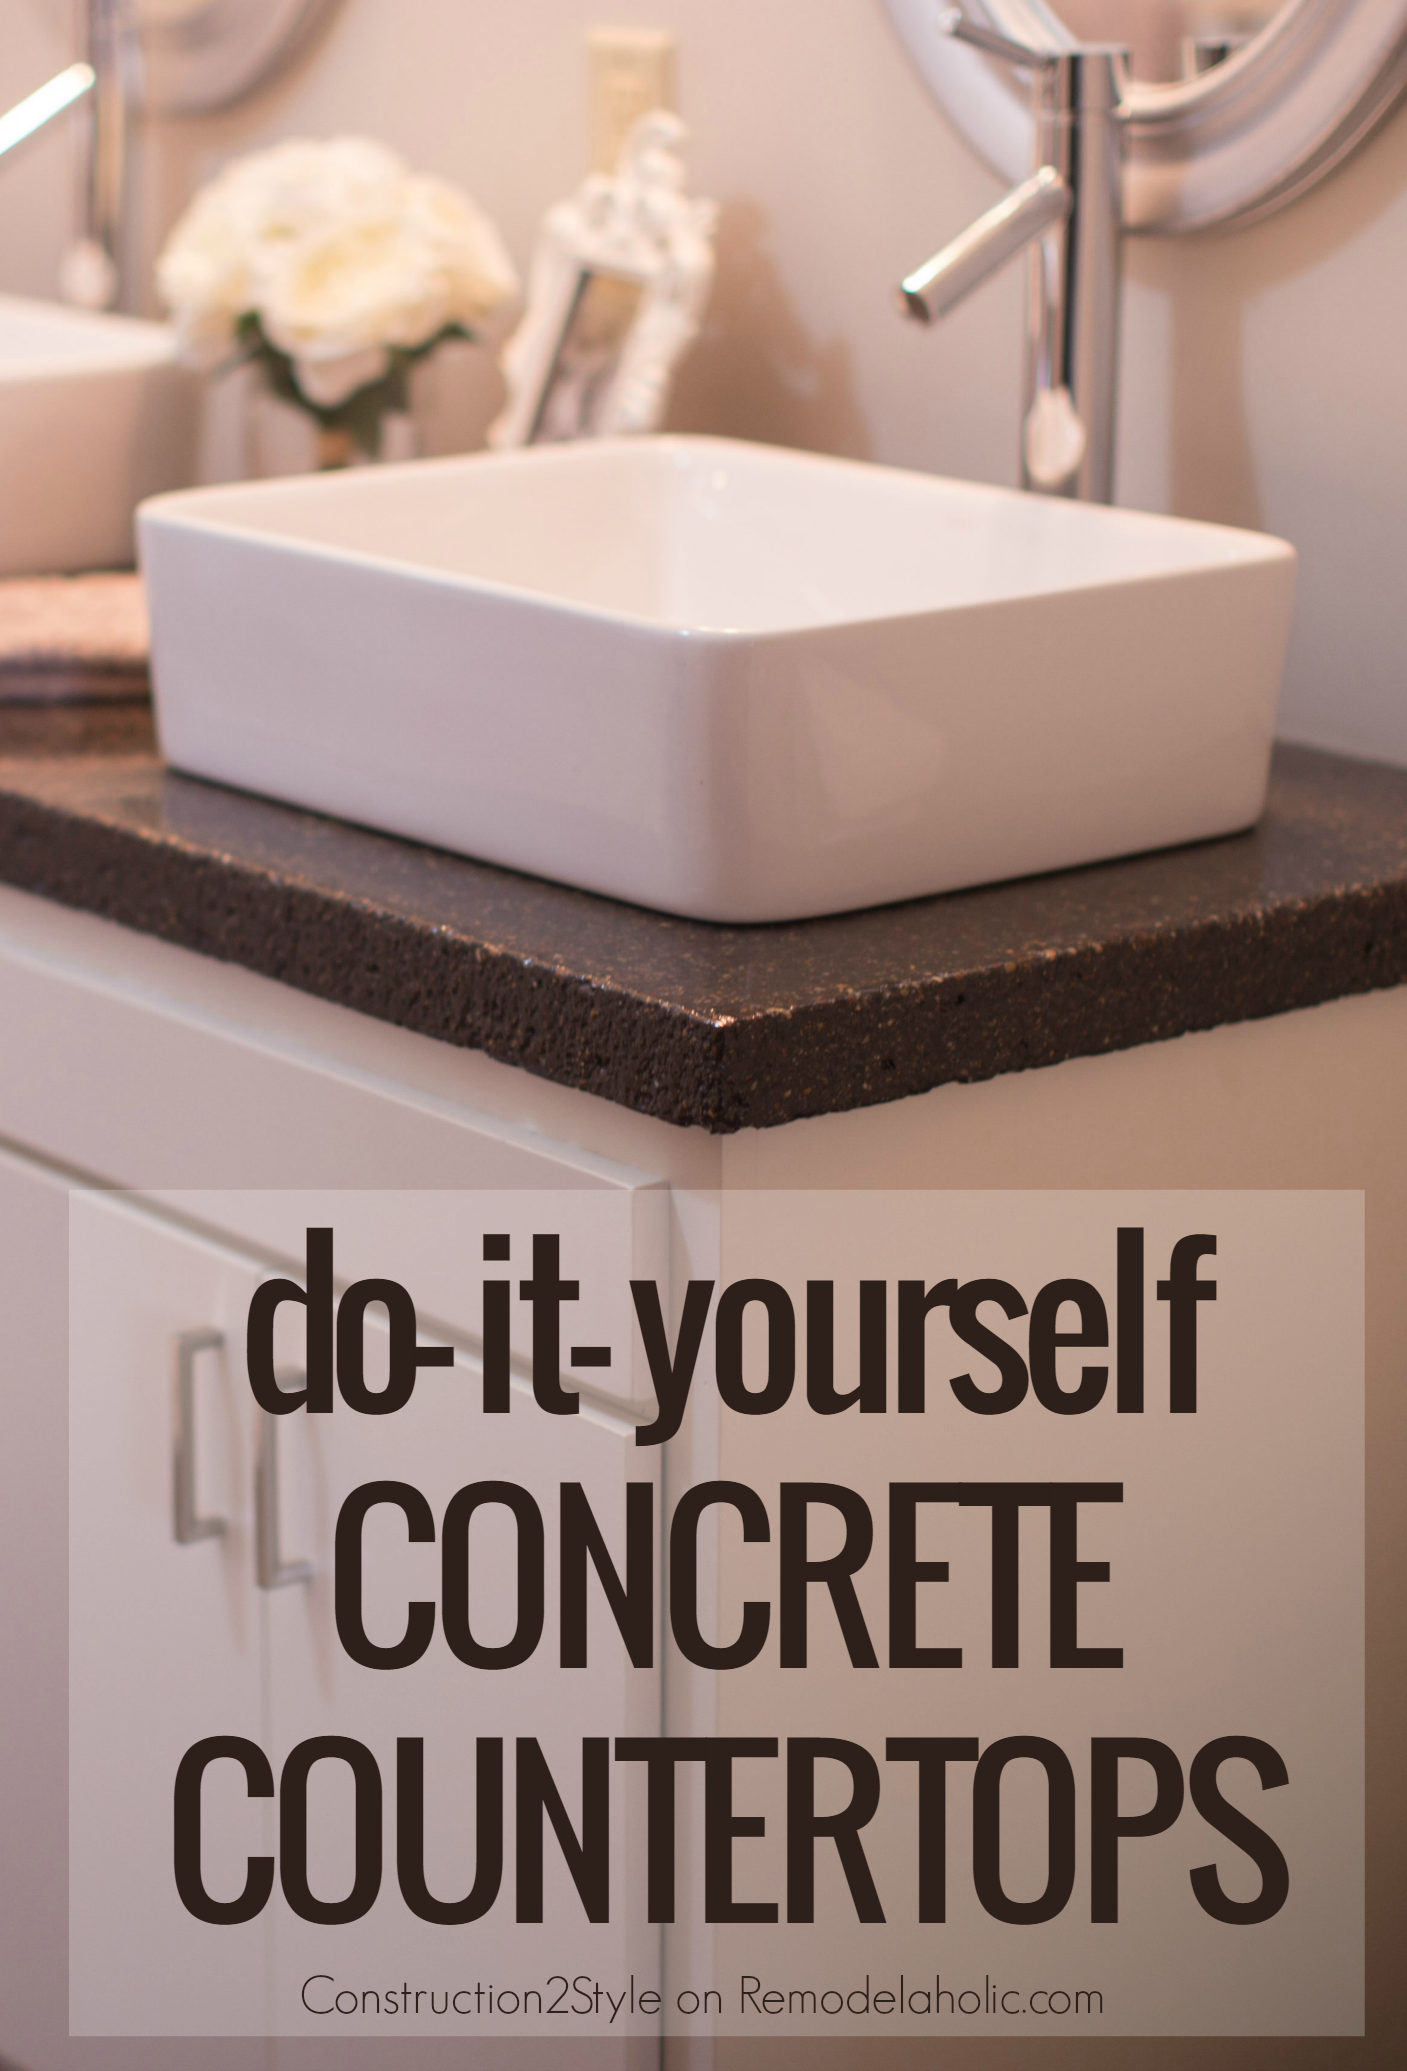 Bathroom Remodeling Do It Yourself remodelaholic | diy concrete countertops in a beautiful master